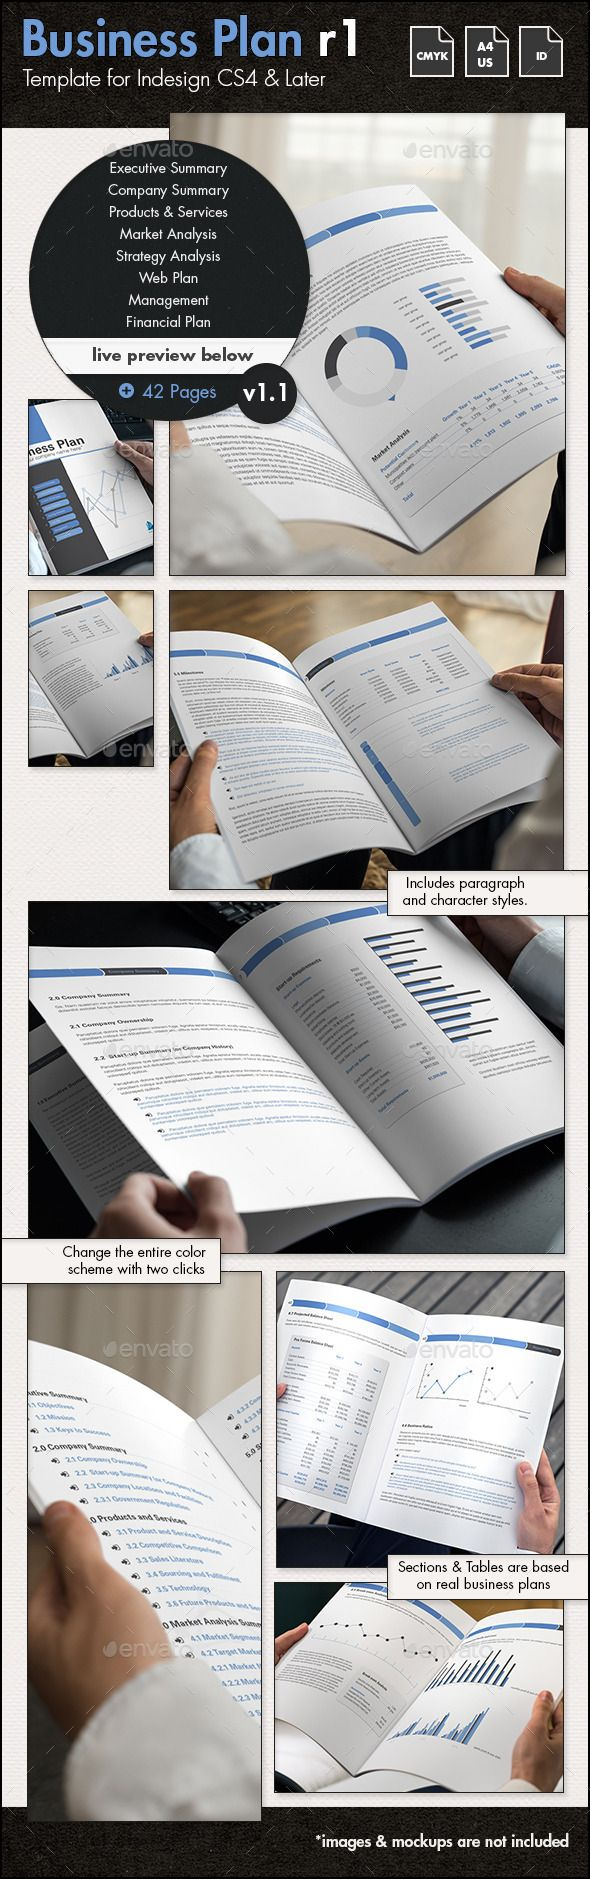 best ideas about business plan presentation 42 pages business plan template graphicriver net